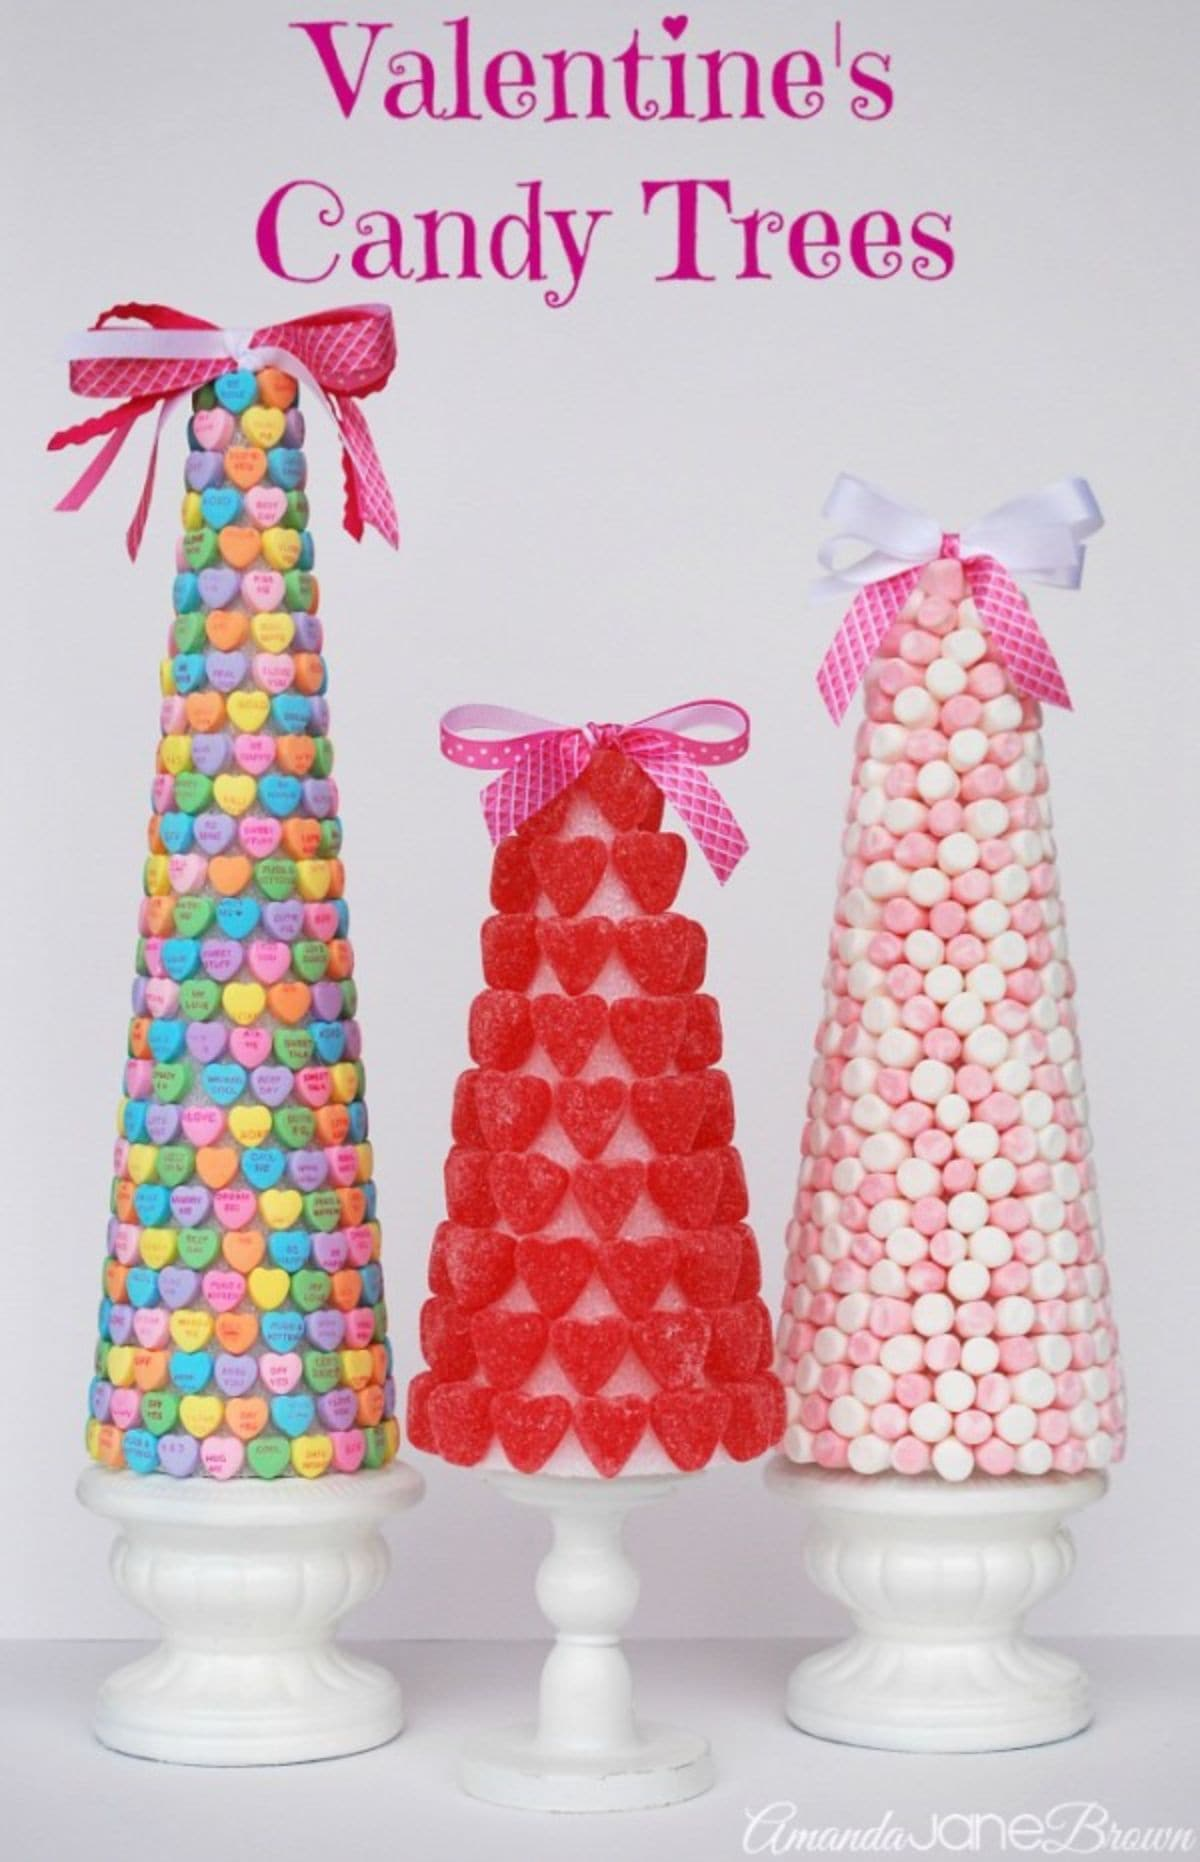 Three cones of varying sizes sit next to each other. On the left is a cone covered in candy hearts, in the middle a cone covered with jelly hearts, on the right a cone covered in sugar balls